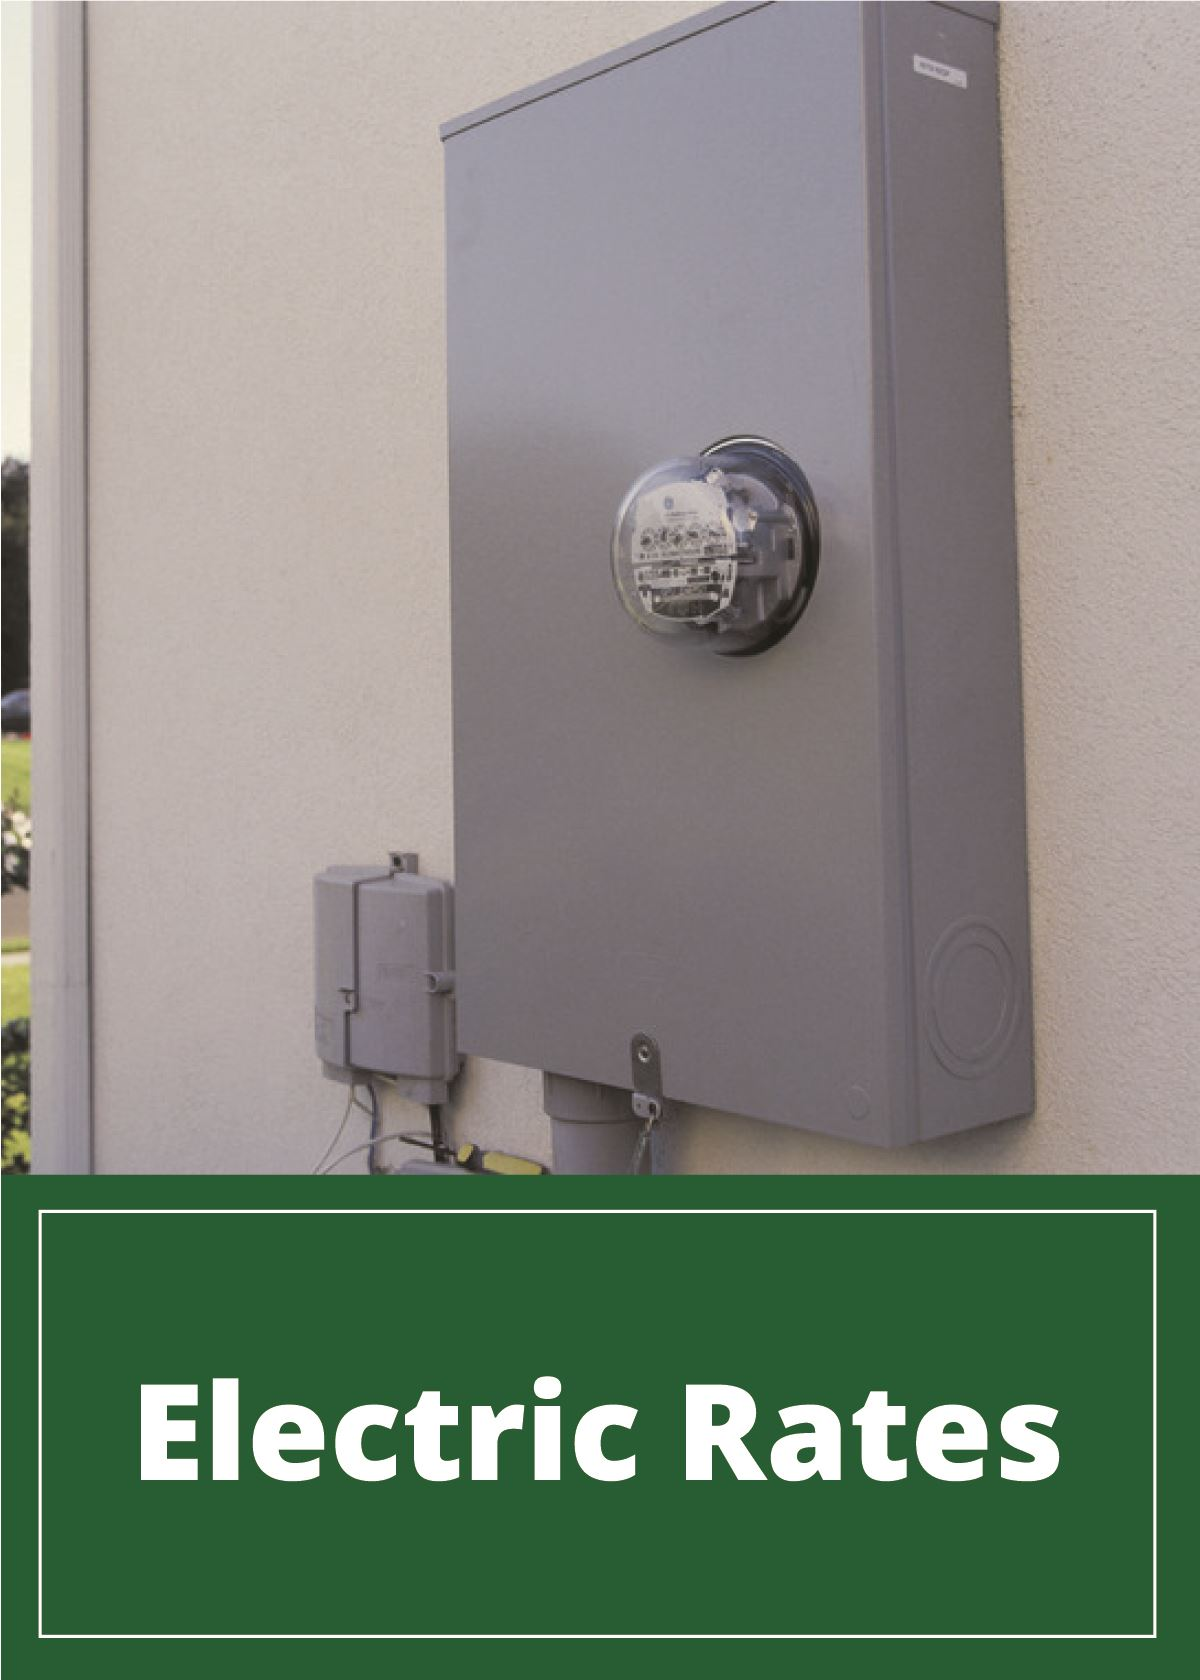 Electric Rates-01